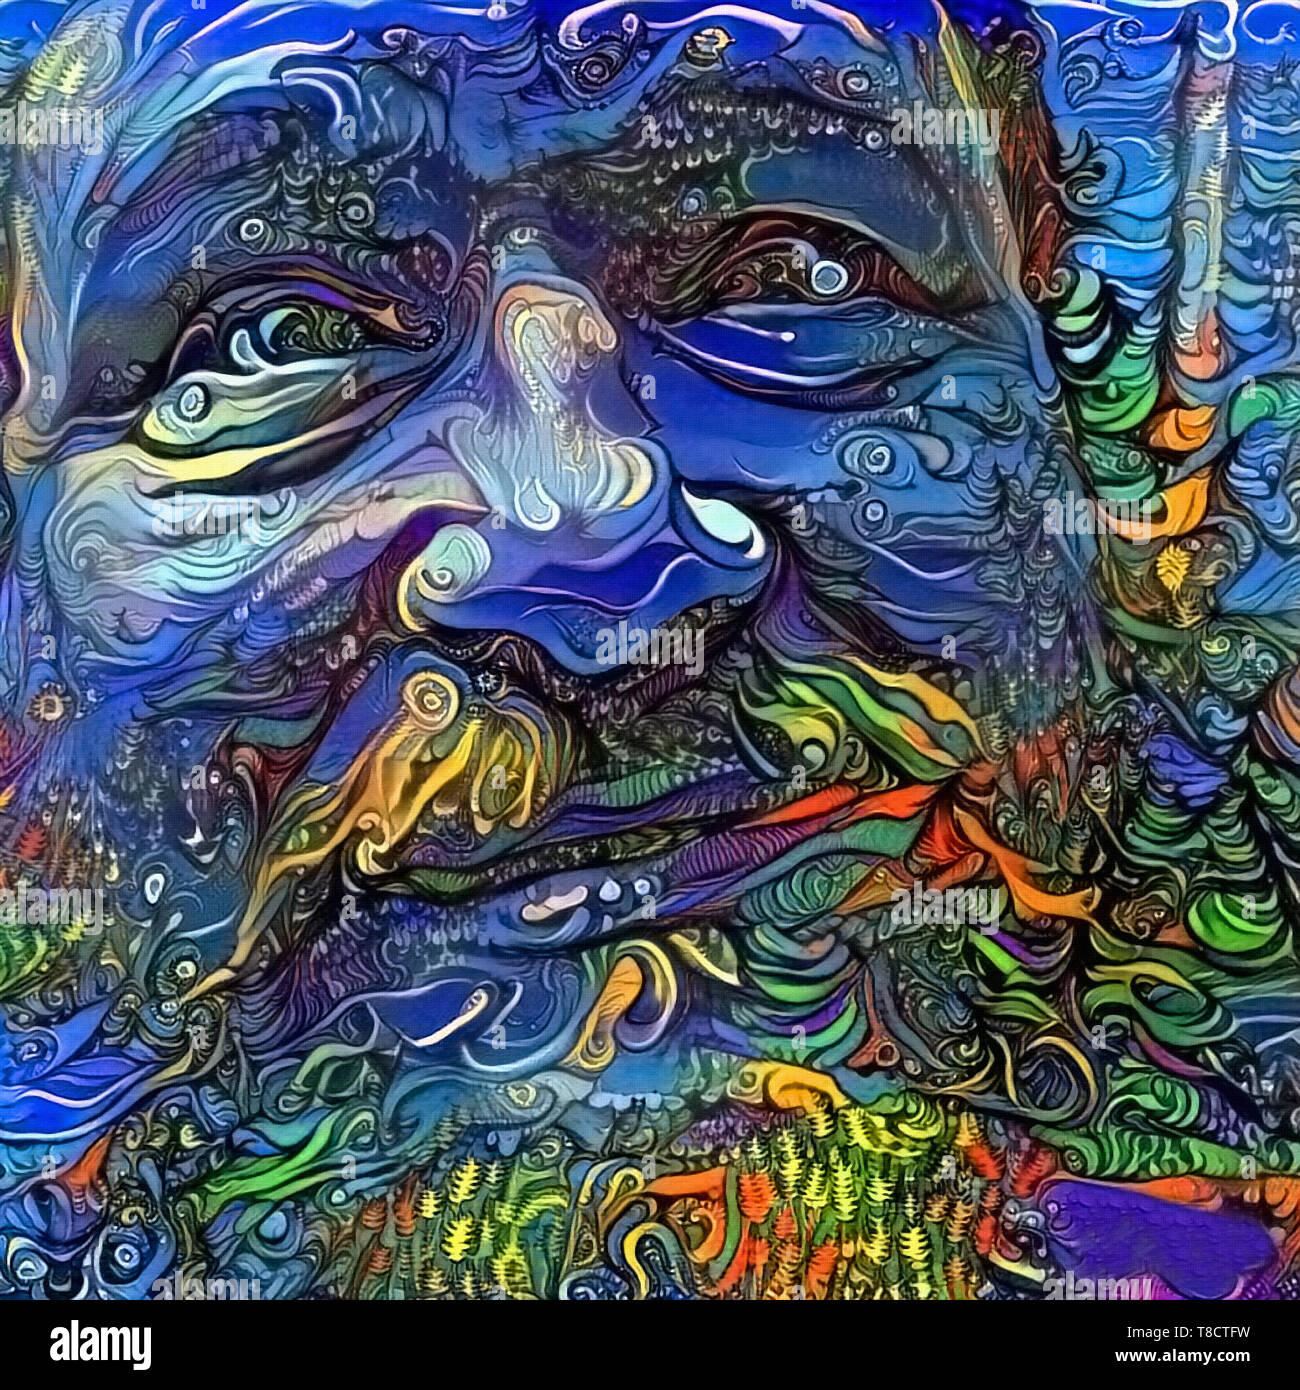 Modern Abstract Painting Smiling Man S Face Stock Photo